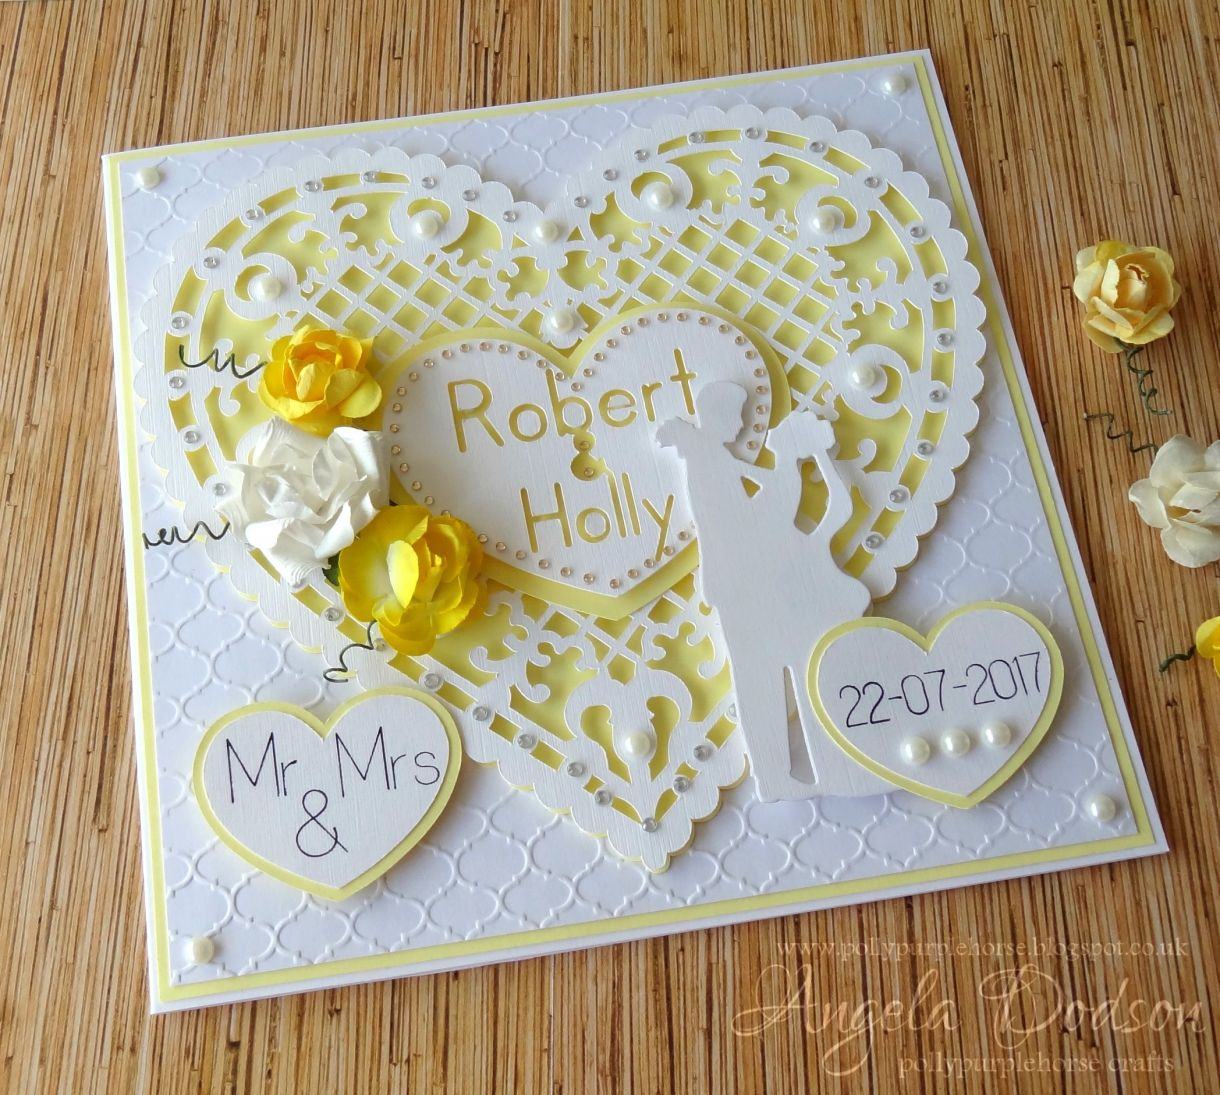 A Papercut Heart Wedding Card